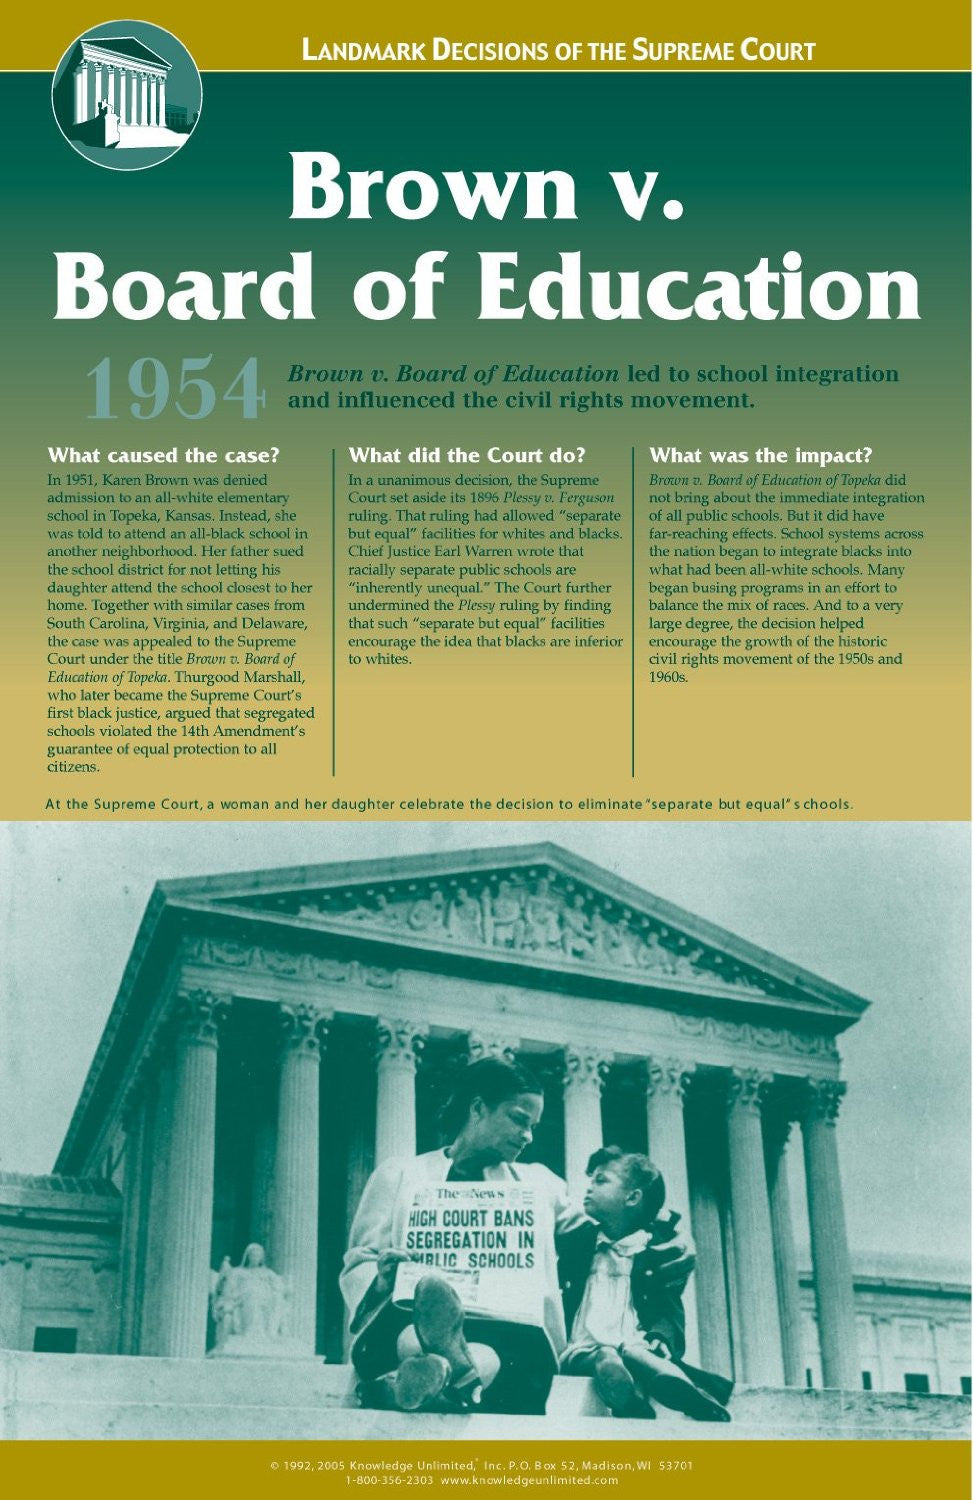 Brown vs. Board of Education Poster by Knoweldge Unlimited